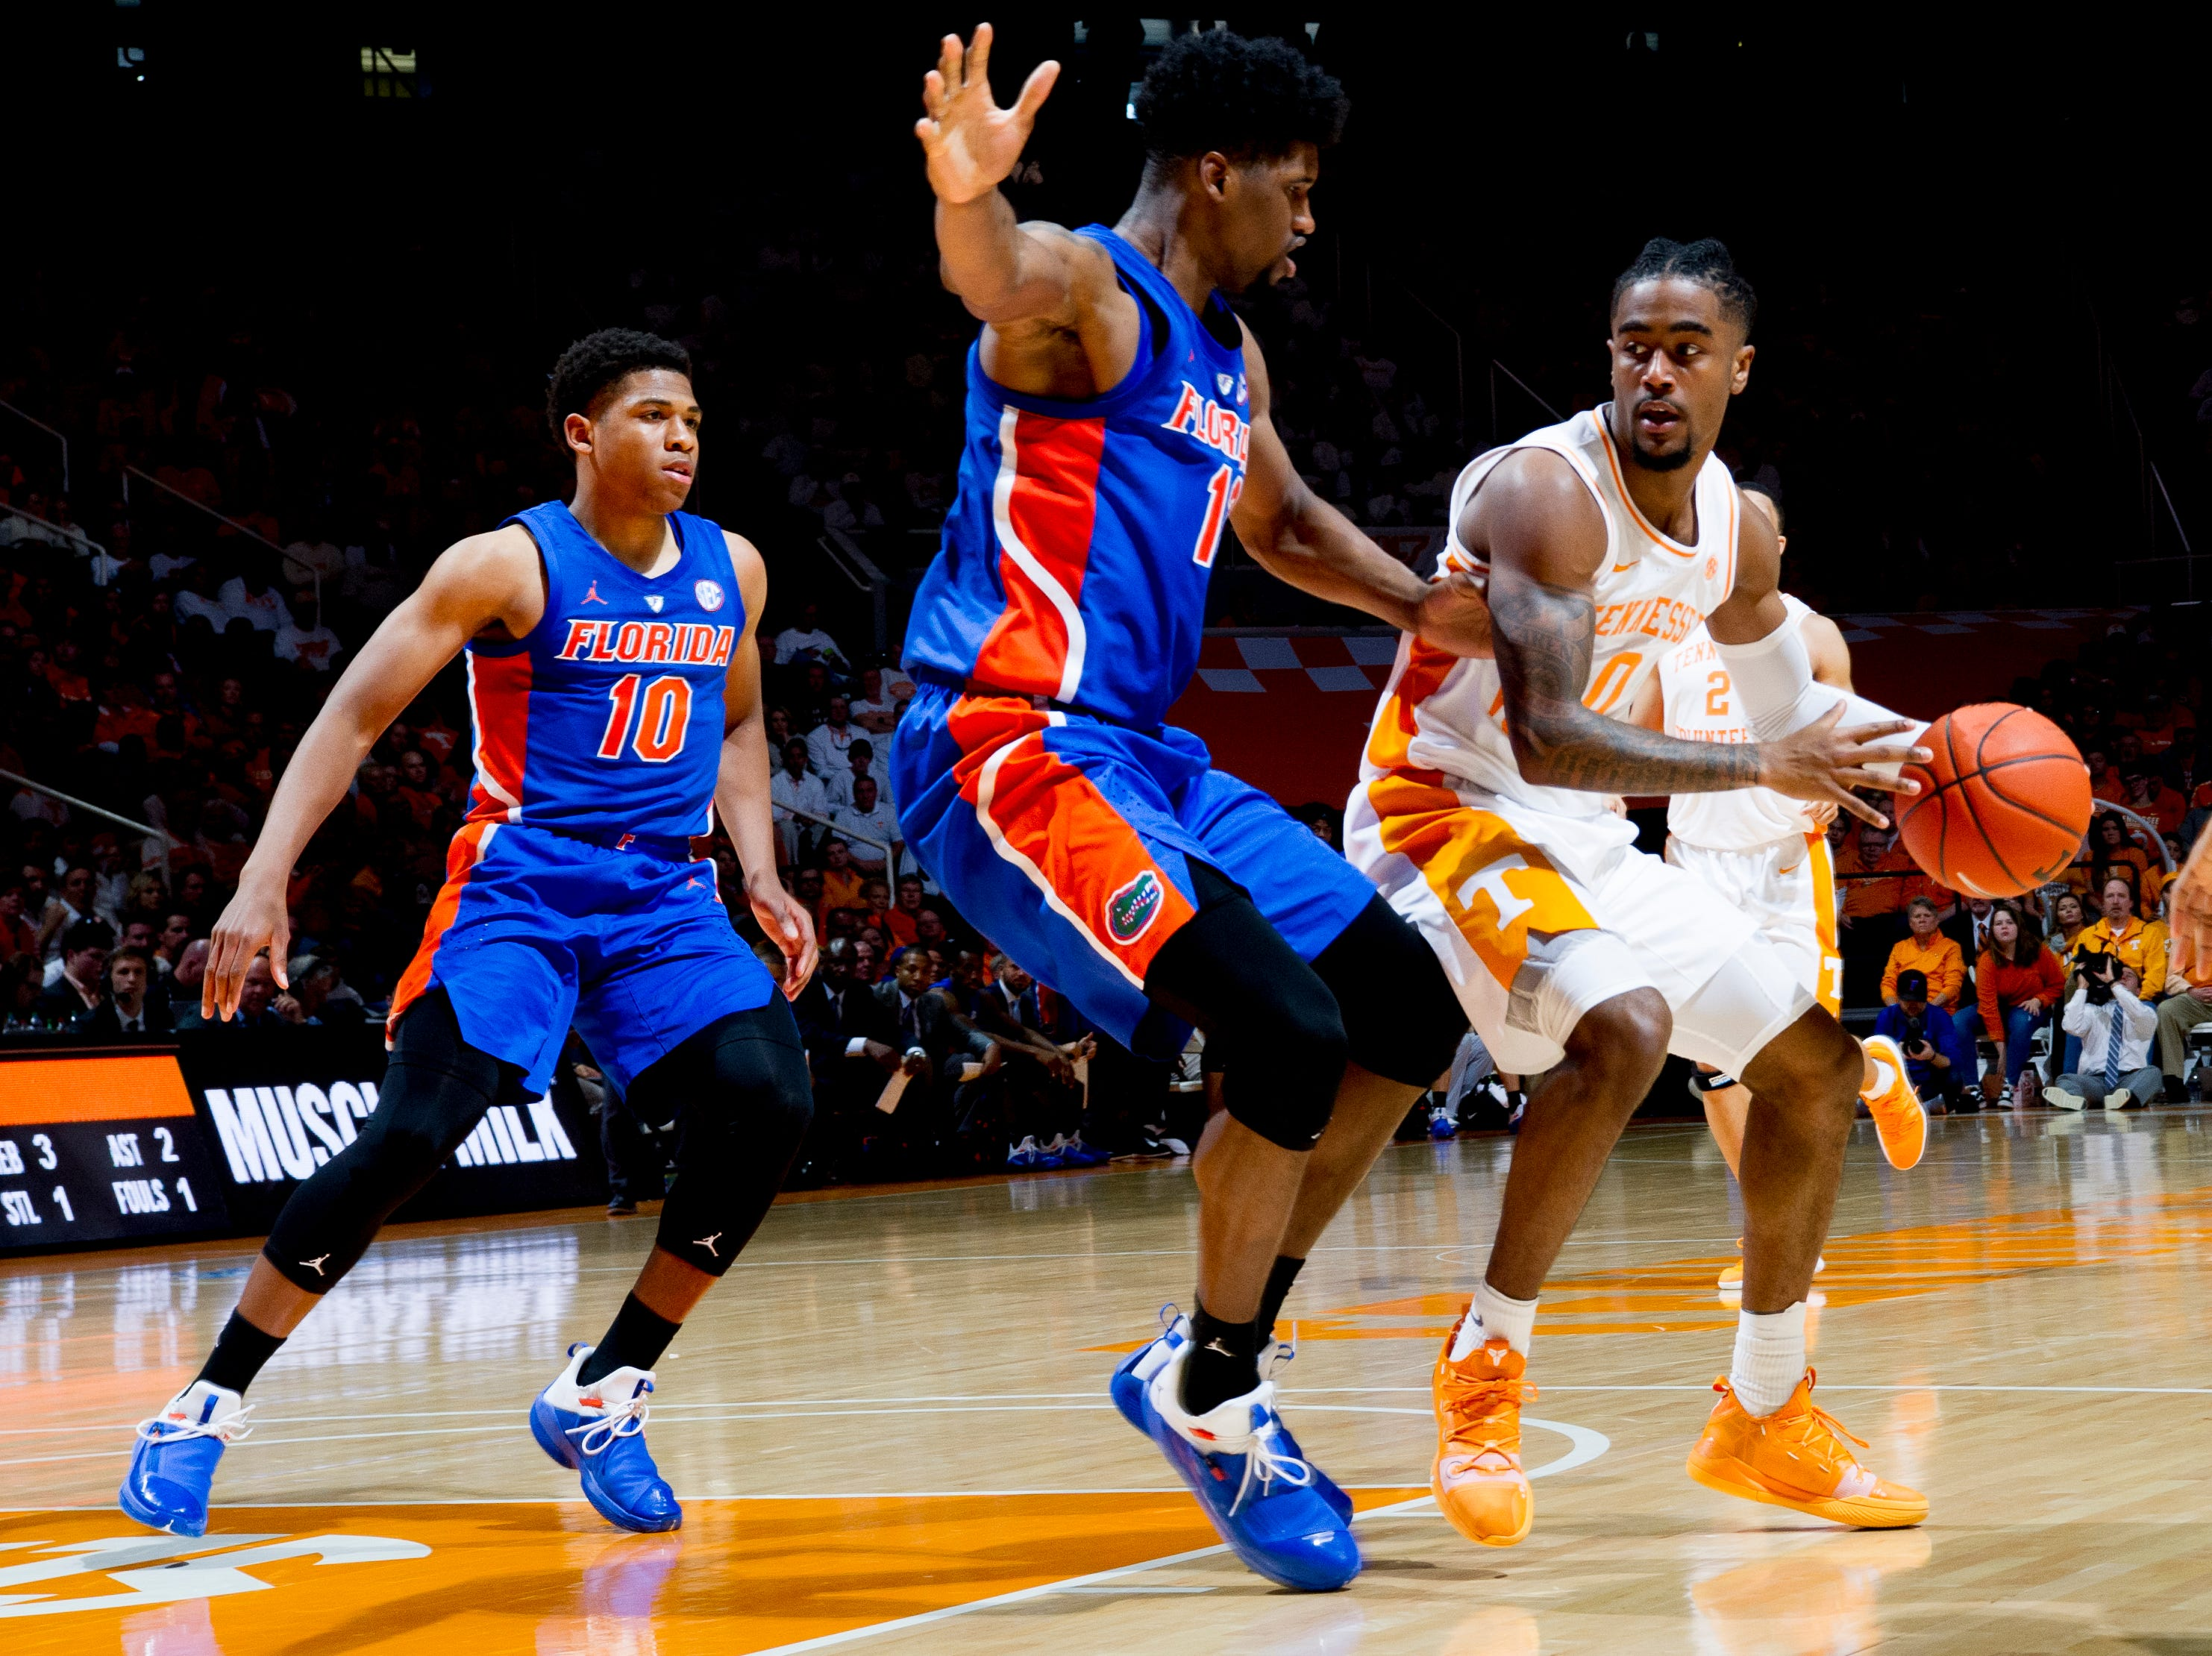 Tennessee guard Jordan Bone (0) is defended against by Florida center Kevarrius Hayes (13) during a game between Tennessee and Florida at Thompson-Boling Arena in Knoxville, Tennessee on Saturday, February 9, 2019.